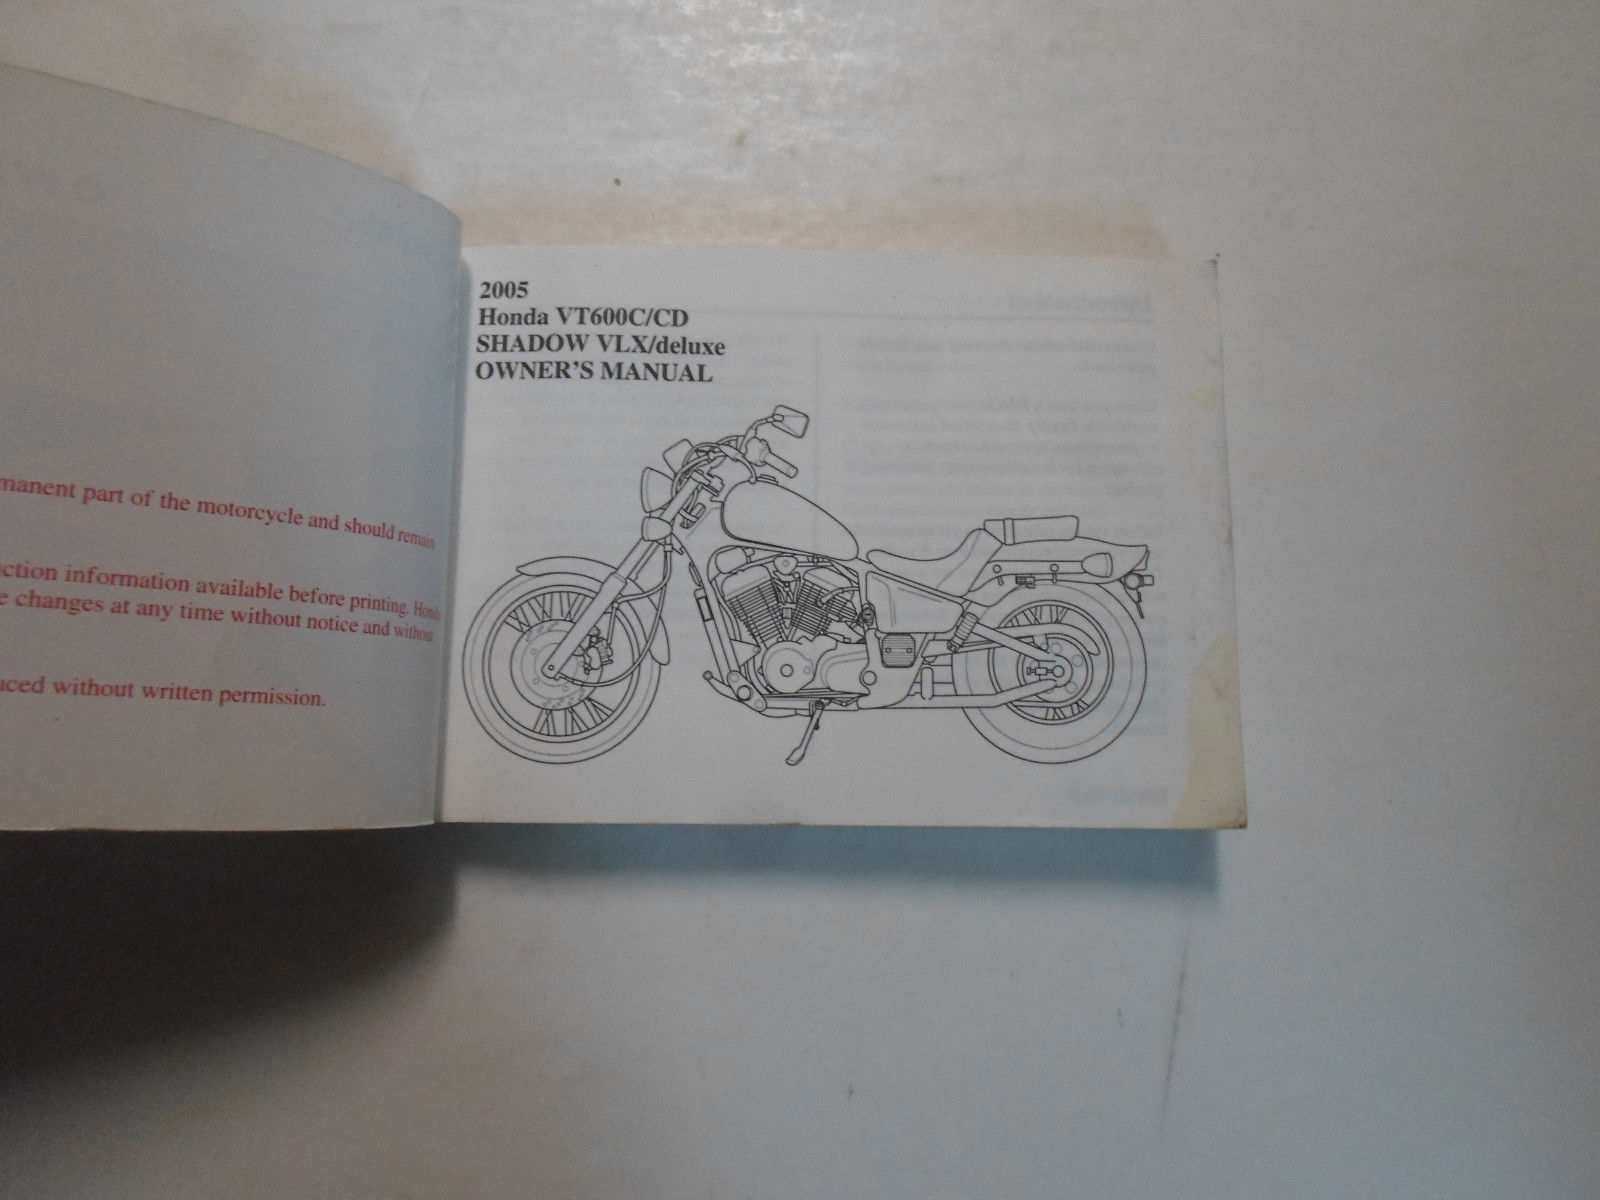 2005 Honda Vt600ccd Shadow Vlxdeluxe And Similar Items